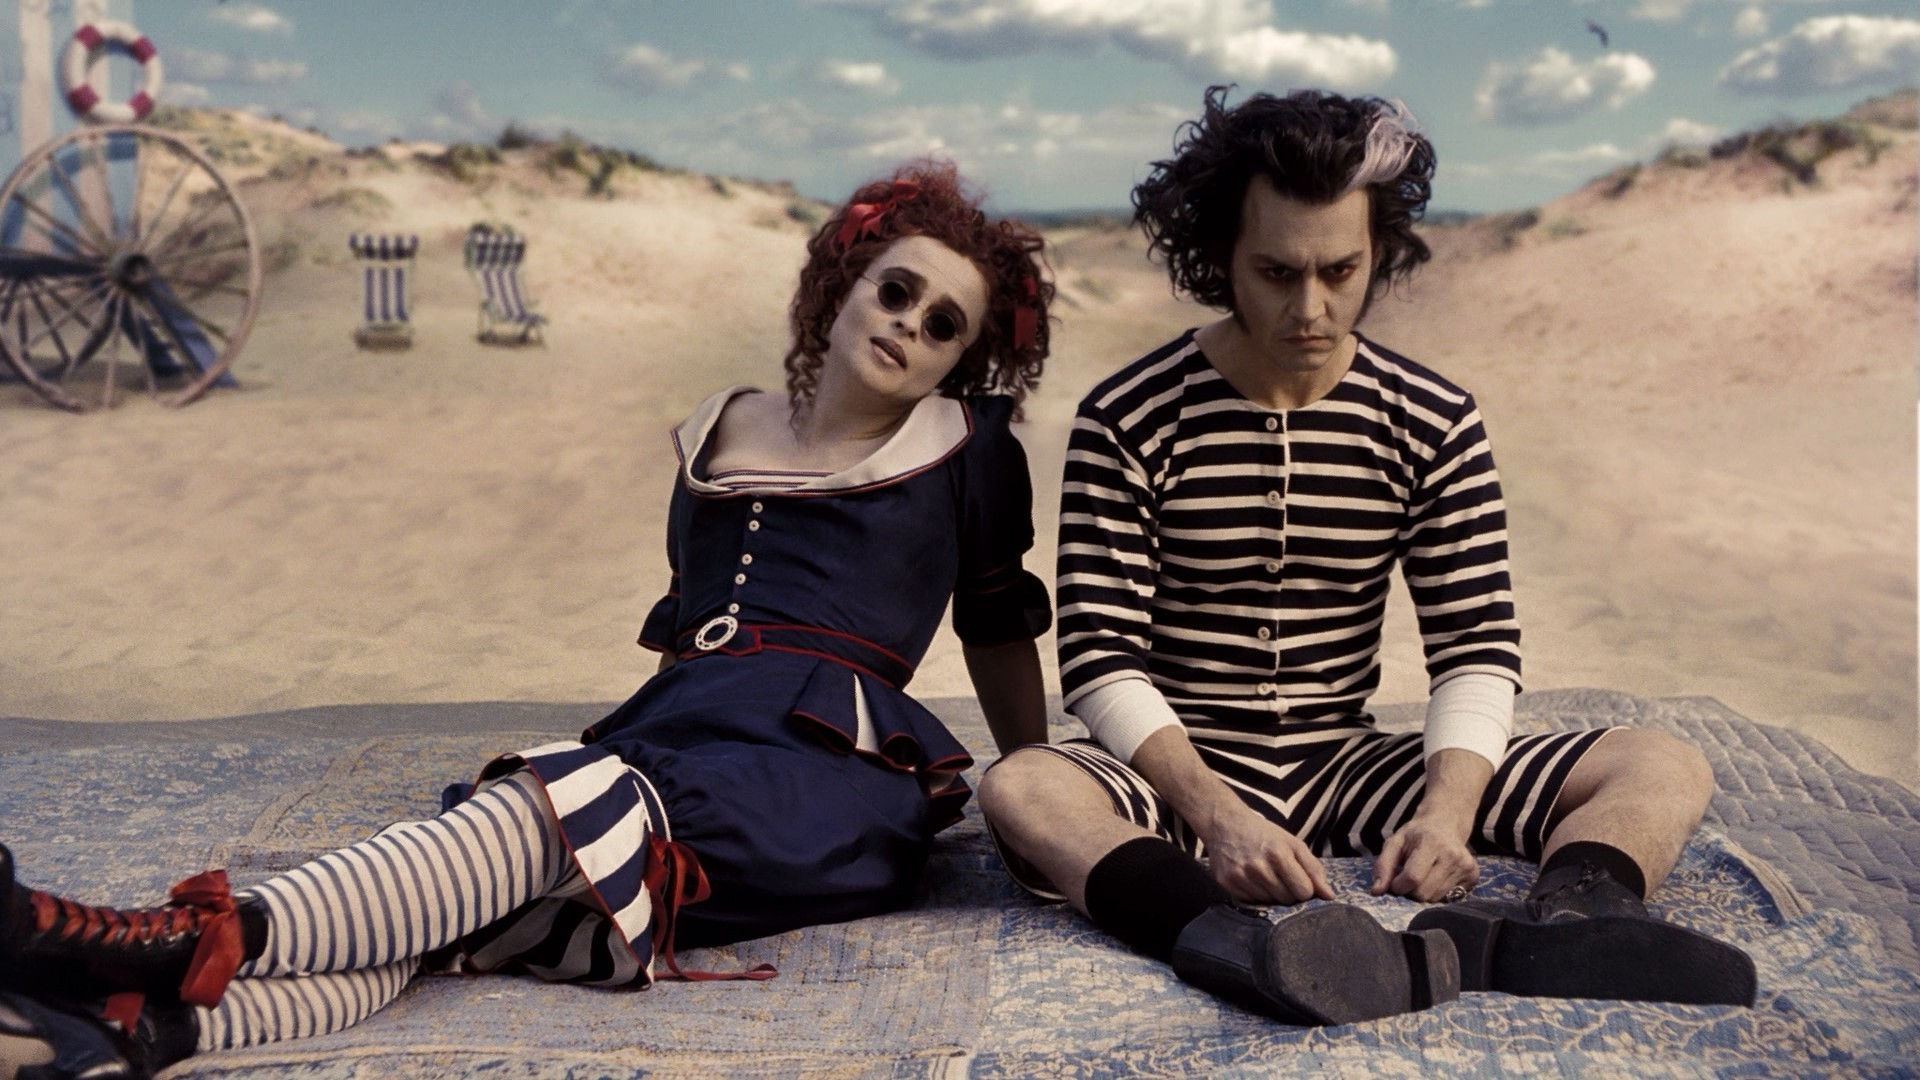 Goth Anime Girls Wallpapers Sweeney Todd Johnny Depp Helena Bonham Carter Wallpapers